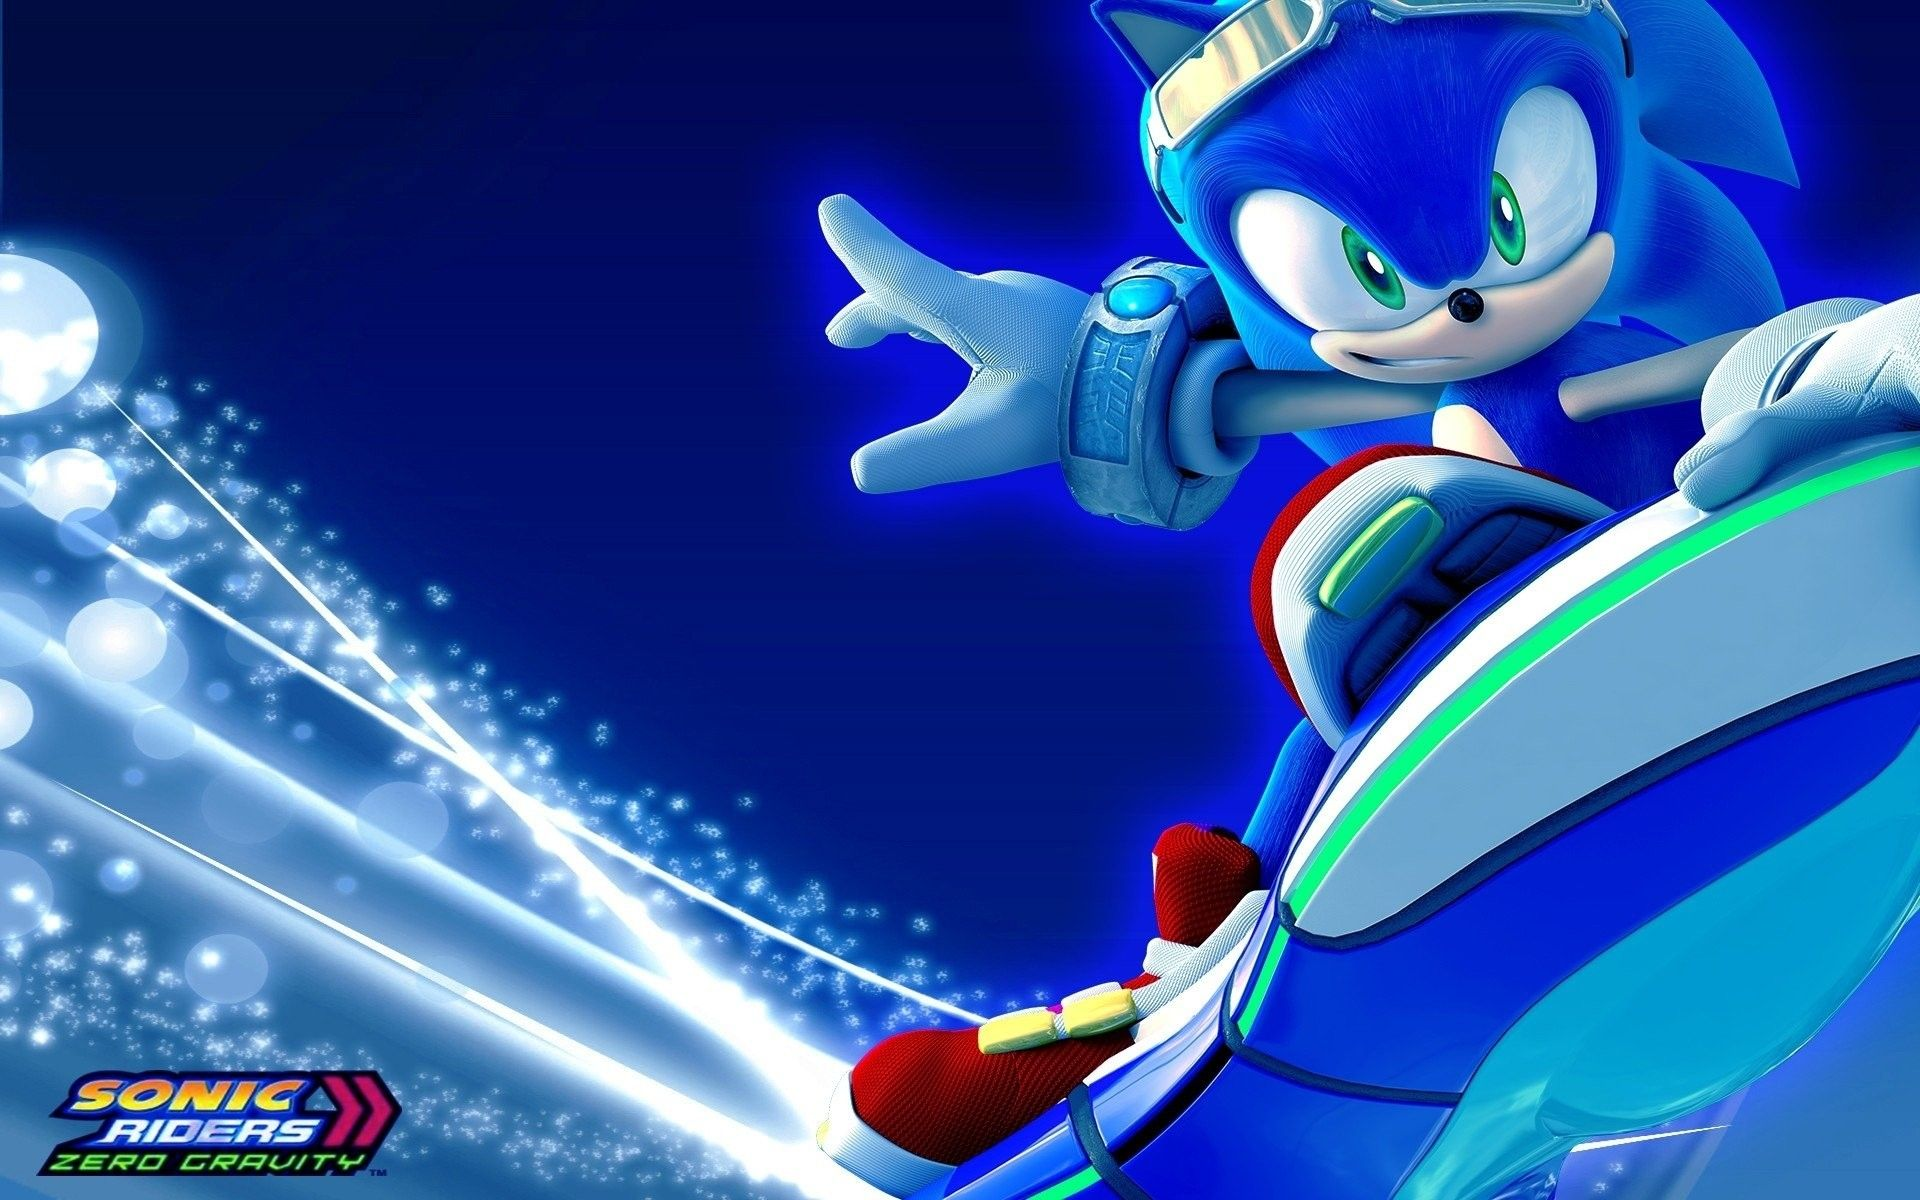 73 Sonic Riders Wallpapers On Wallpaperplay In The Most Incredible Sonic Riders Wallpapers In 2020 With Images Sonic Sonic The Hedgehog Cartoon Wallpaper